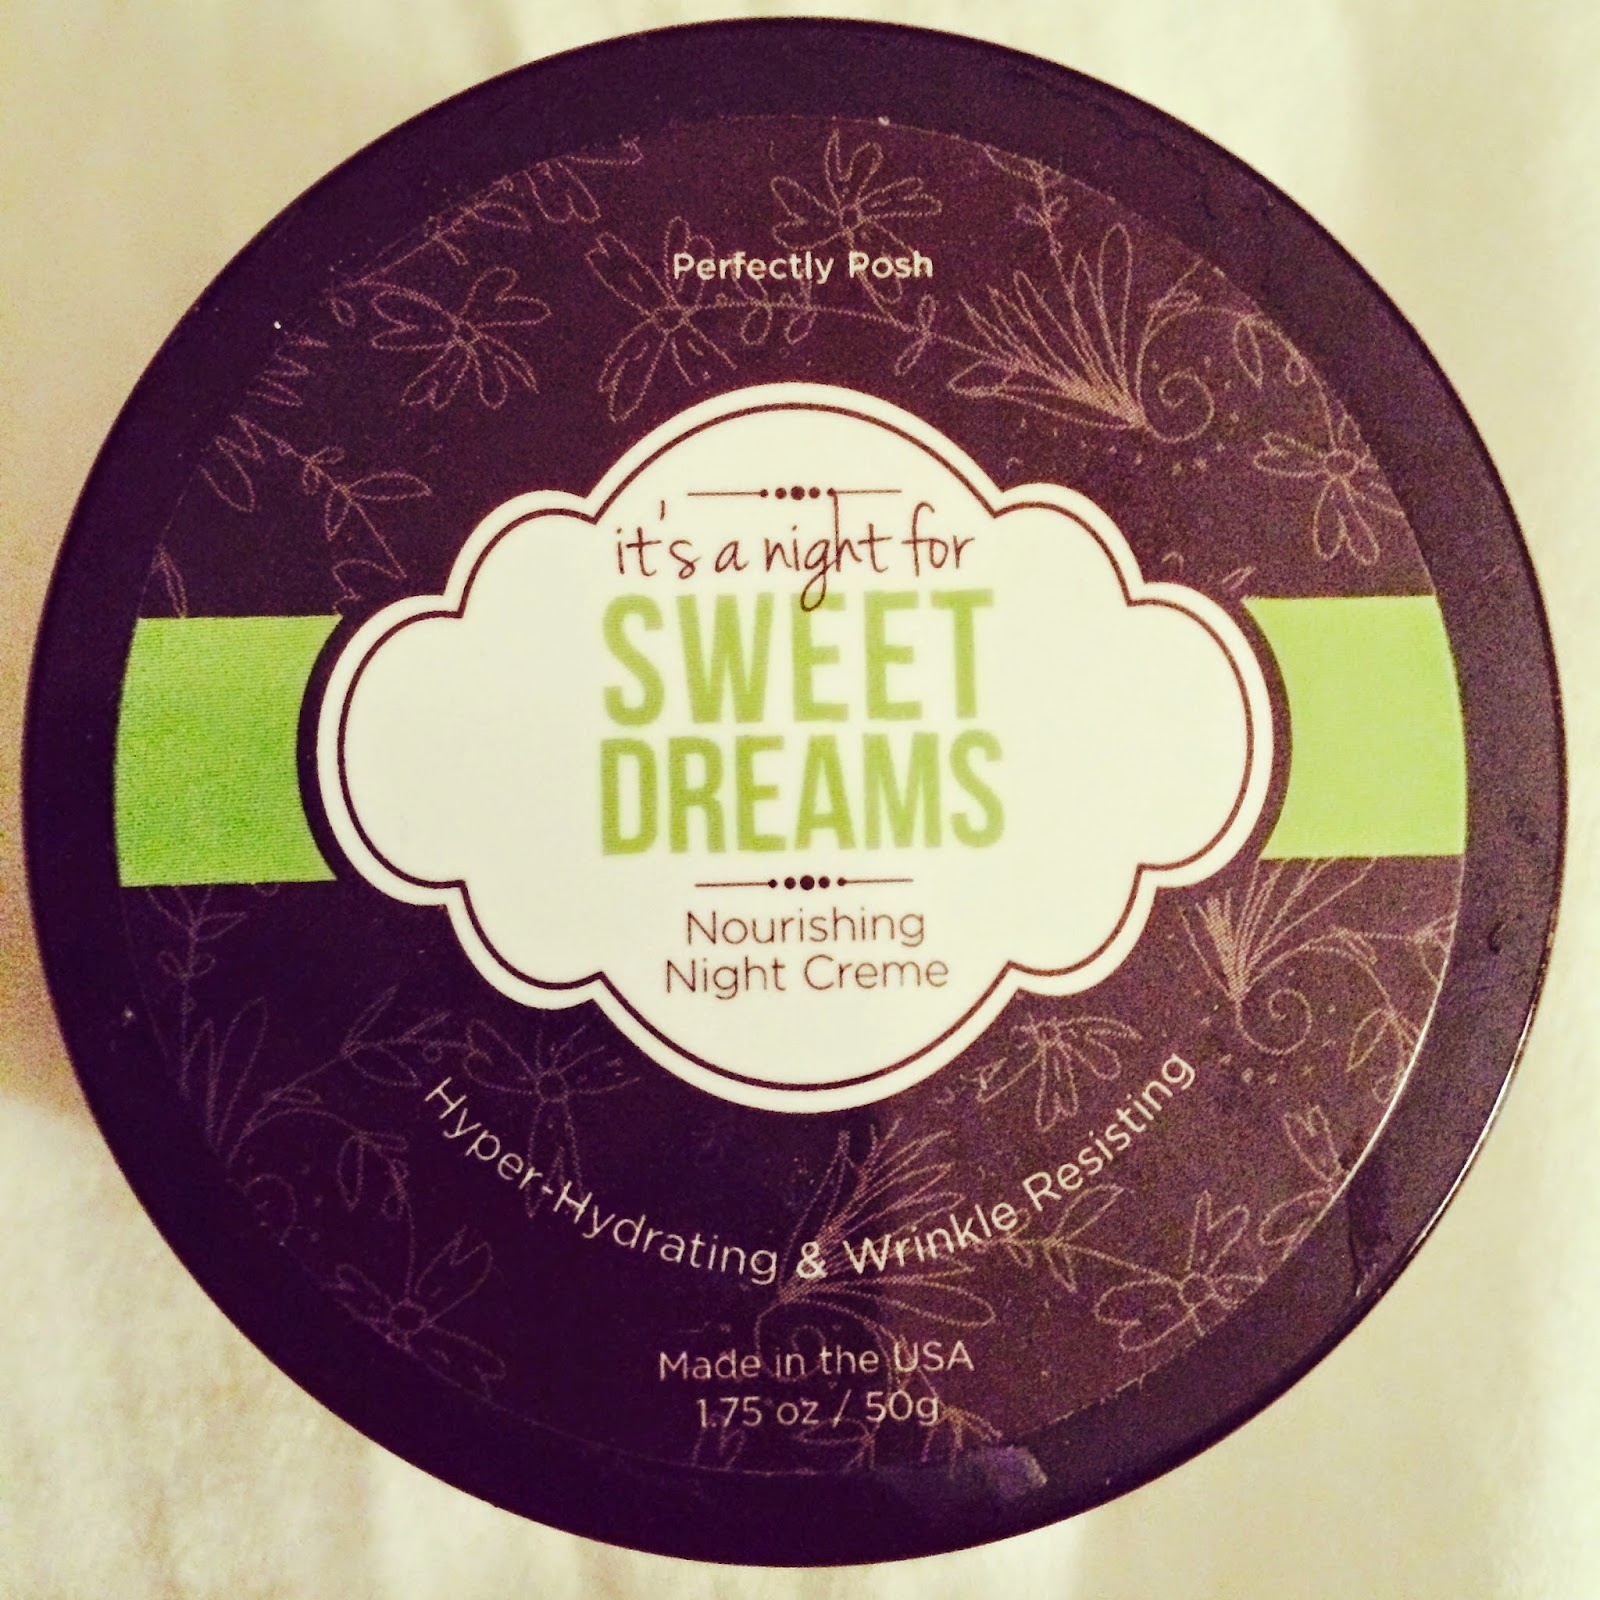 Perfectly Posh Night Creme